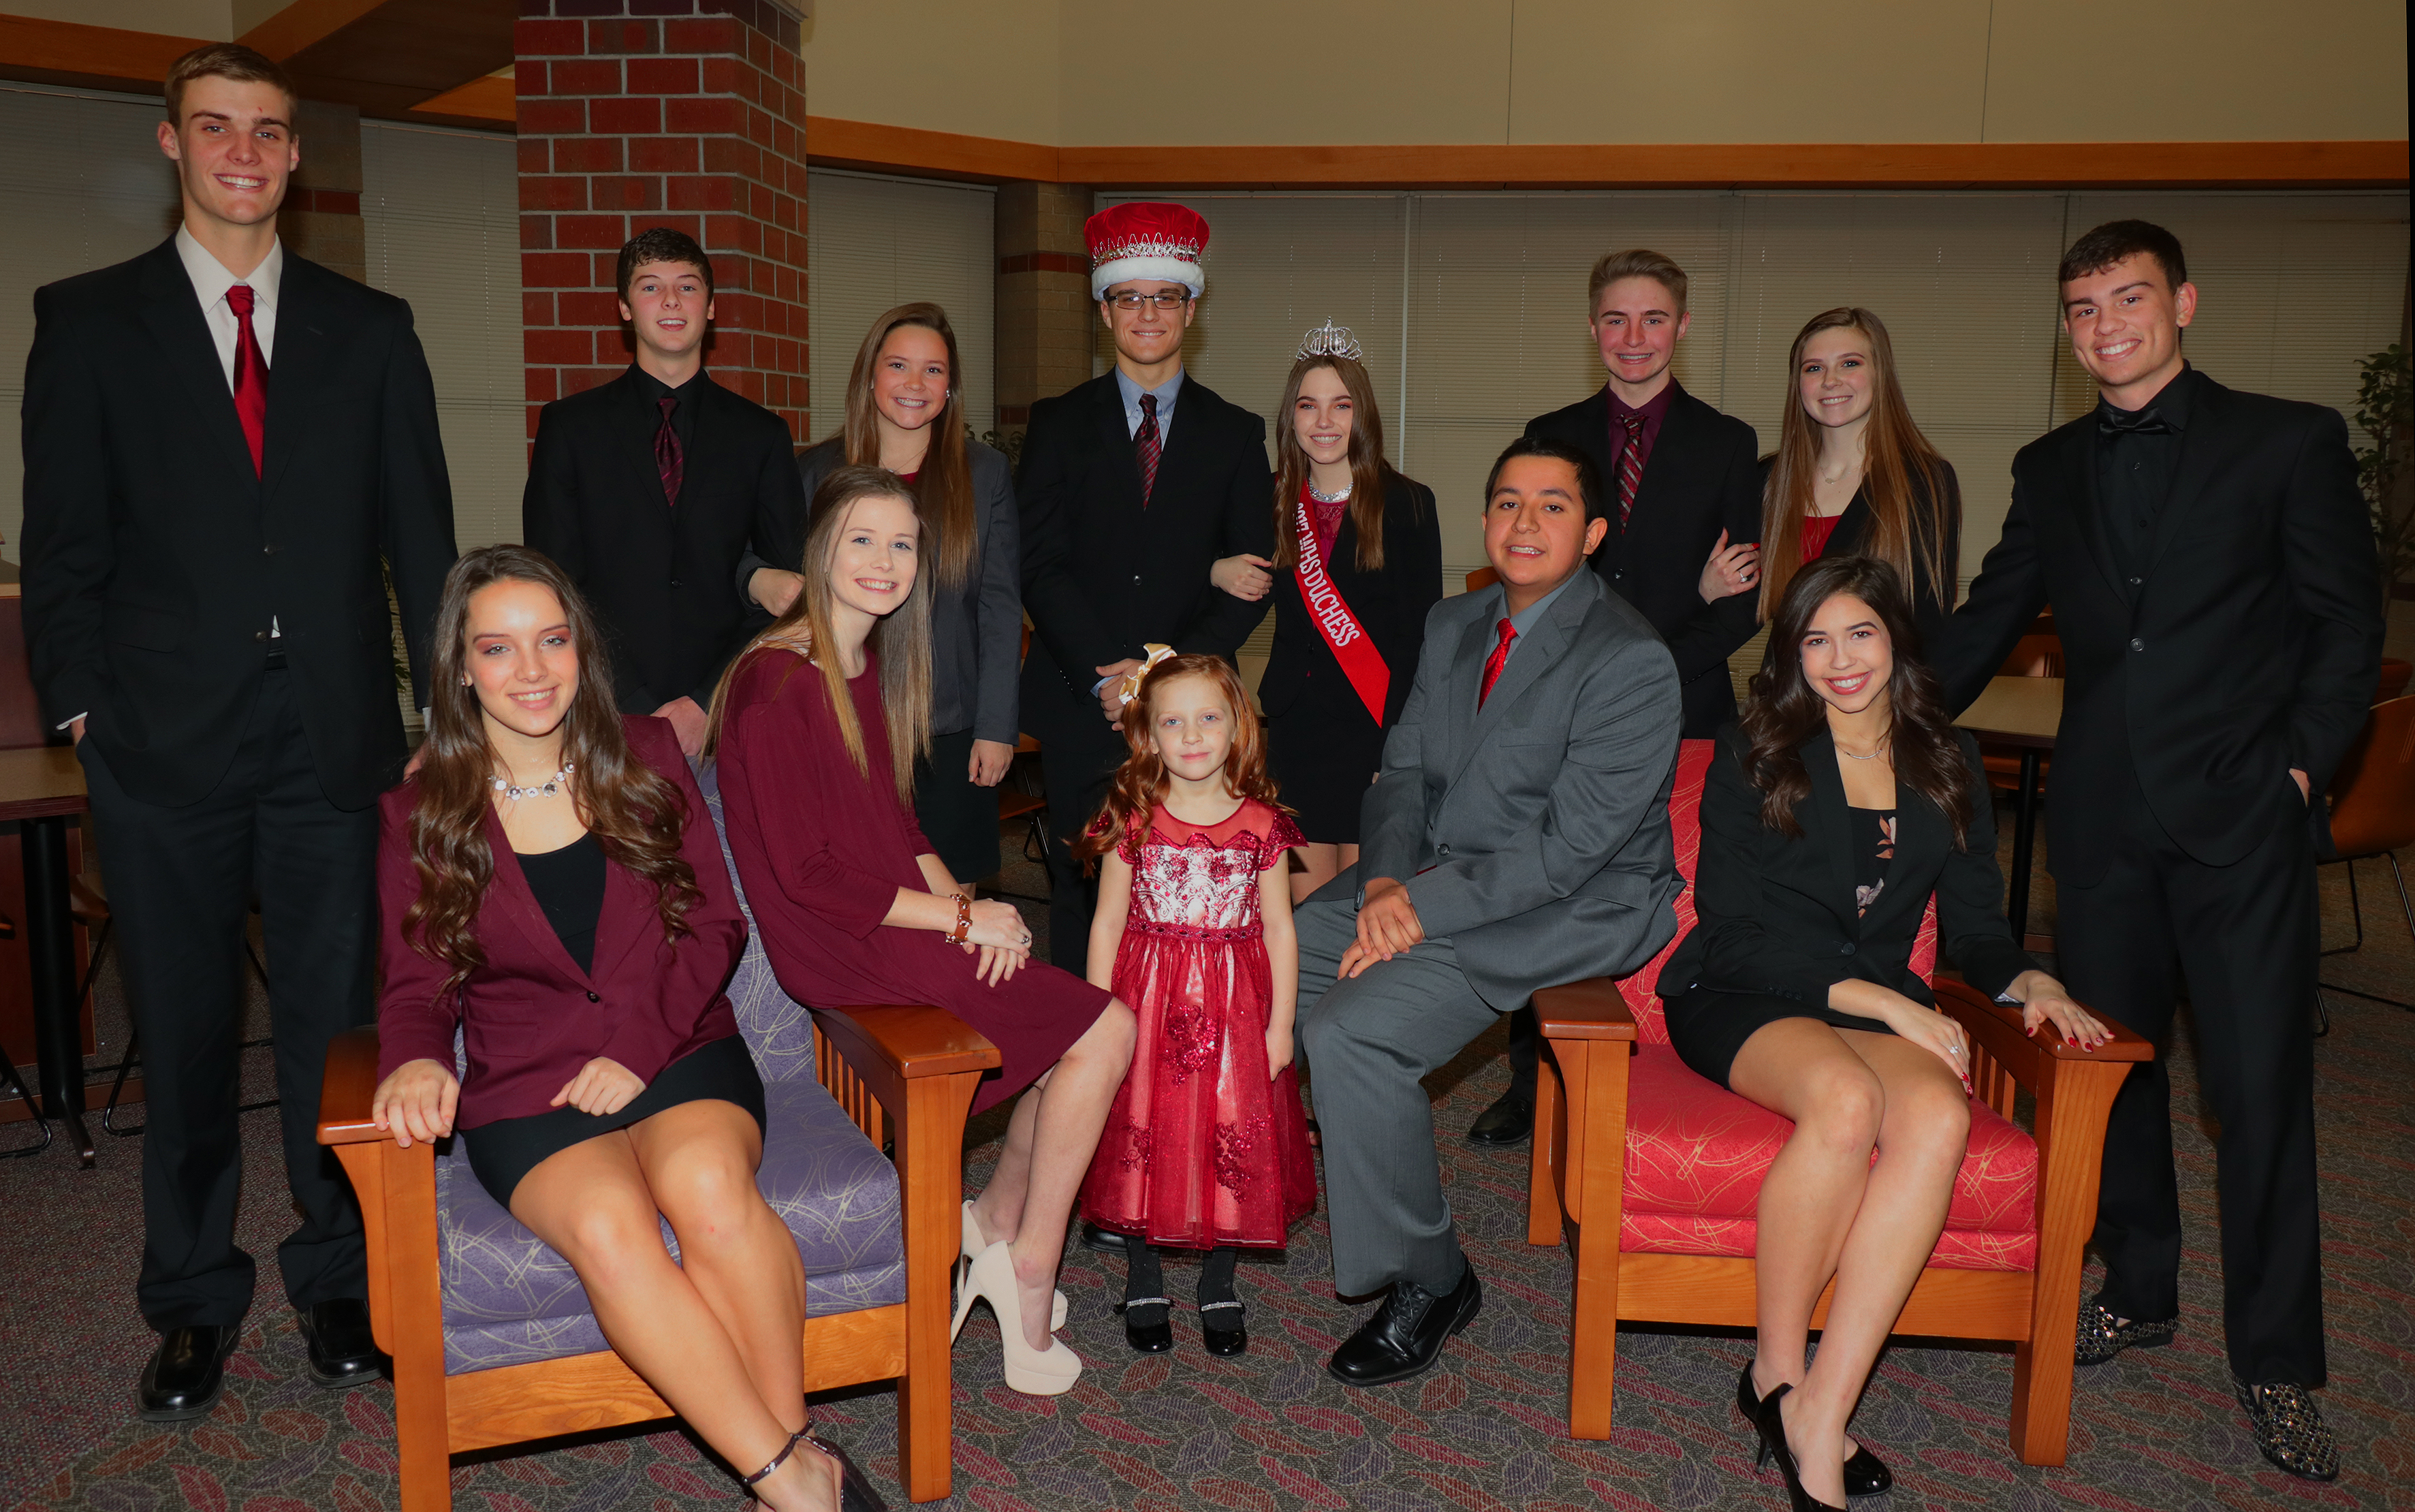 Duke Logan and his royal court